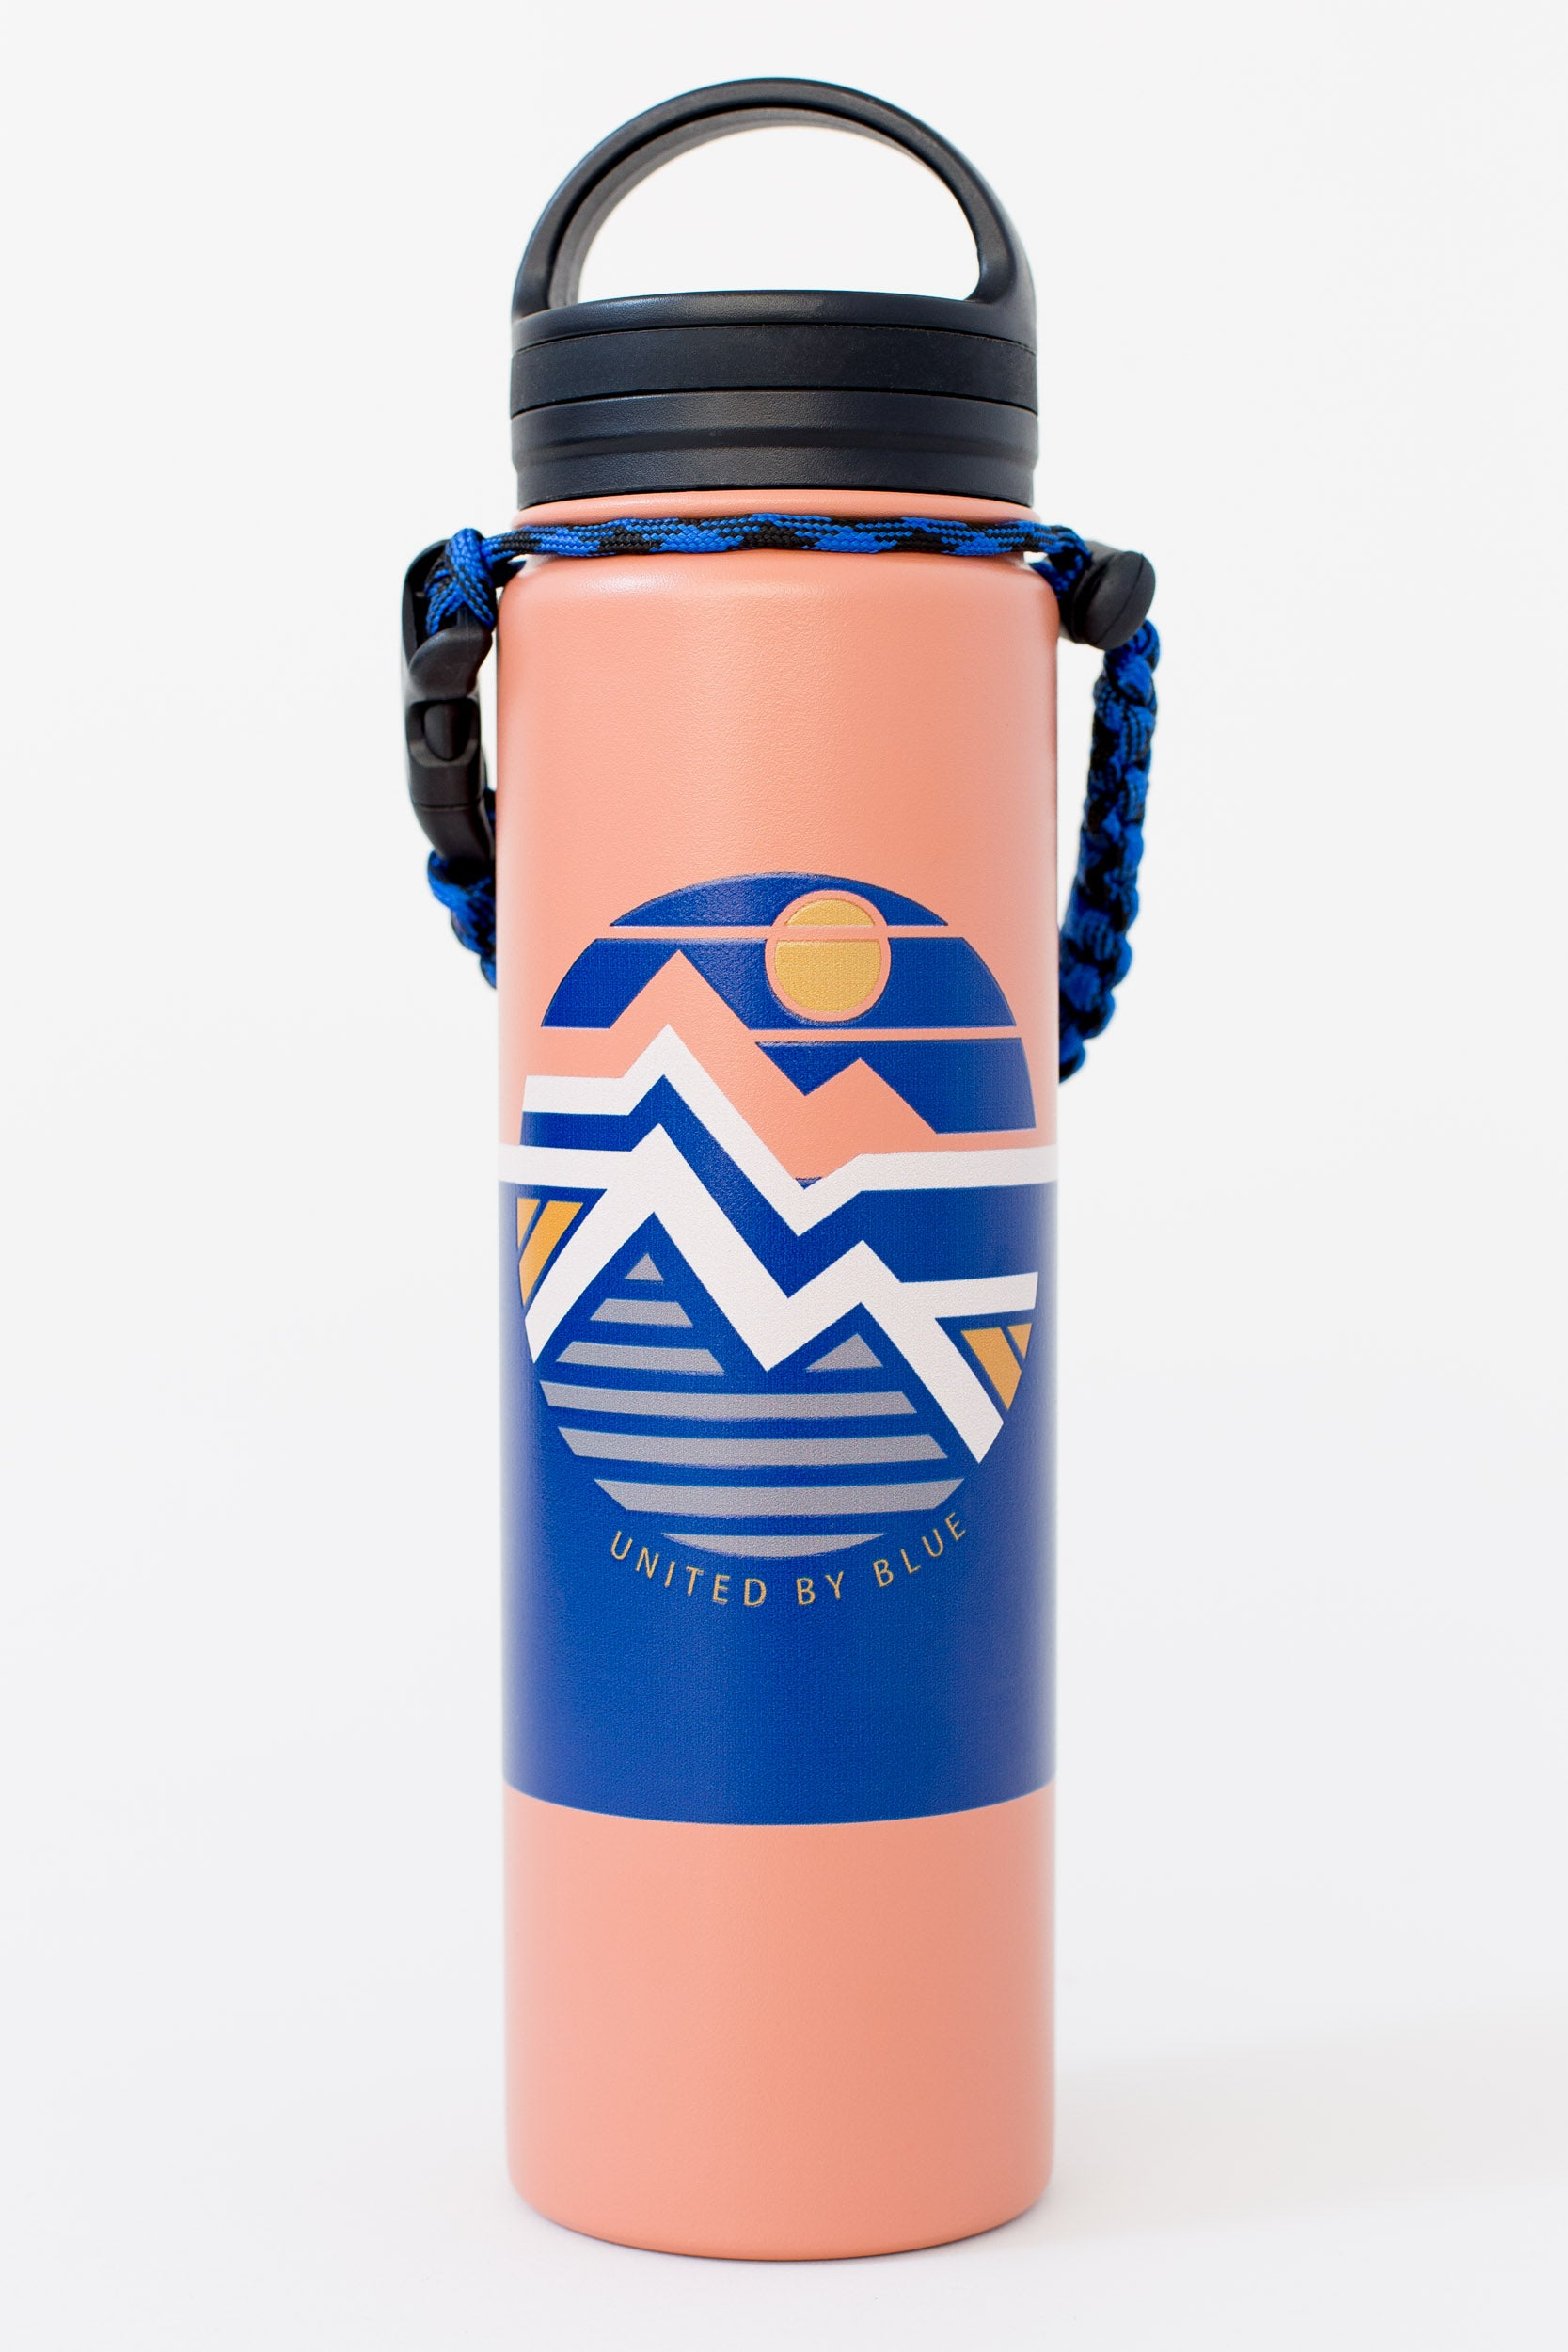 af47321dff32 Geo Mountain 22 oz. Insulated Steel Water Bottle - United By Blue